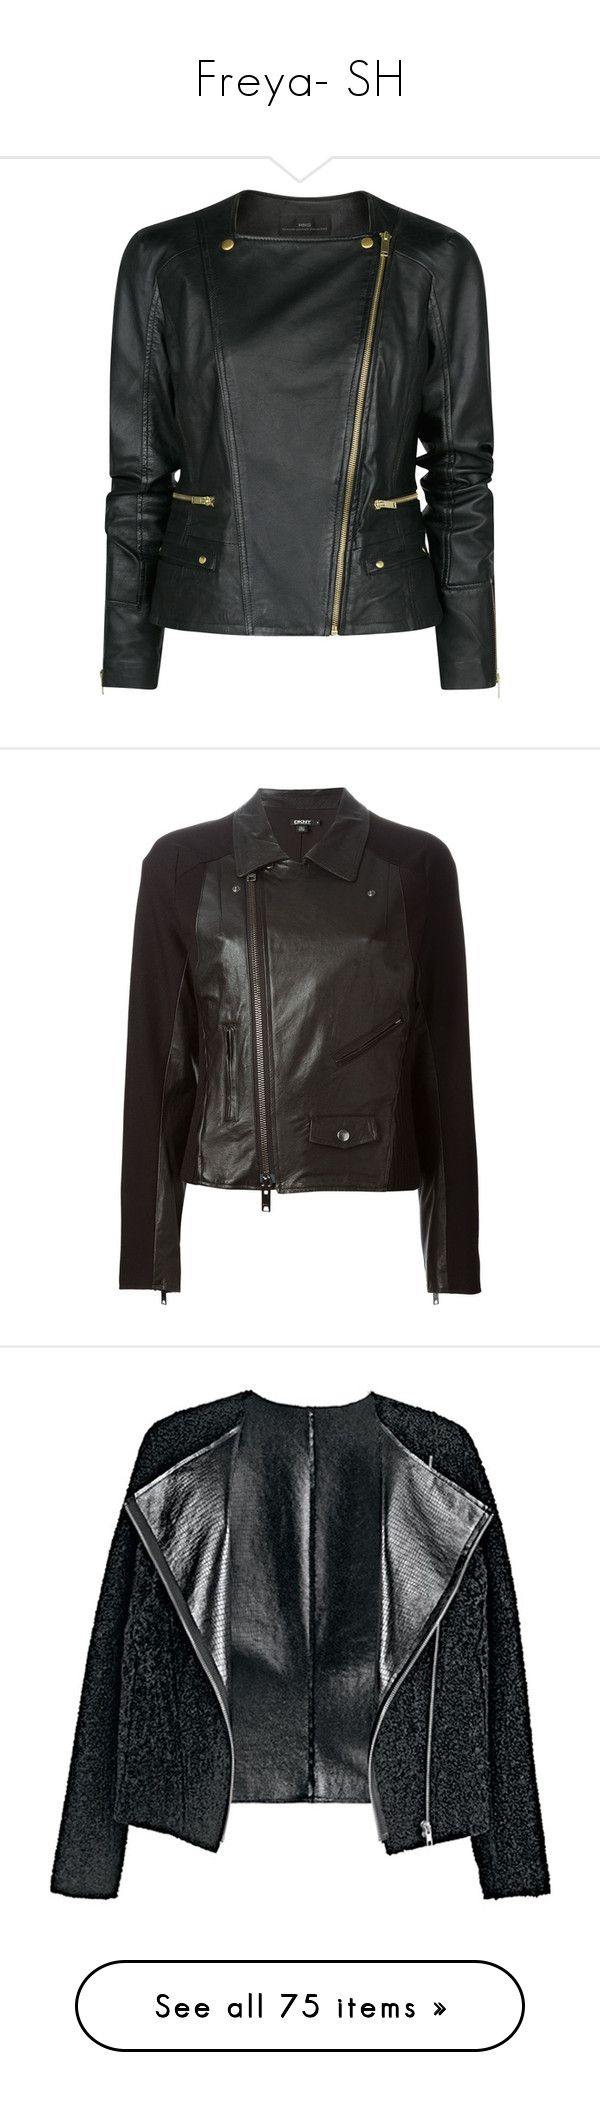 """Freya- SH"" by inestrindade on Polyvore featuring outerwear, jackets, leather jacket, coats, coats & jackets, black, rider jacket, biker jacket, mango jackets and rider leather jacket"